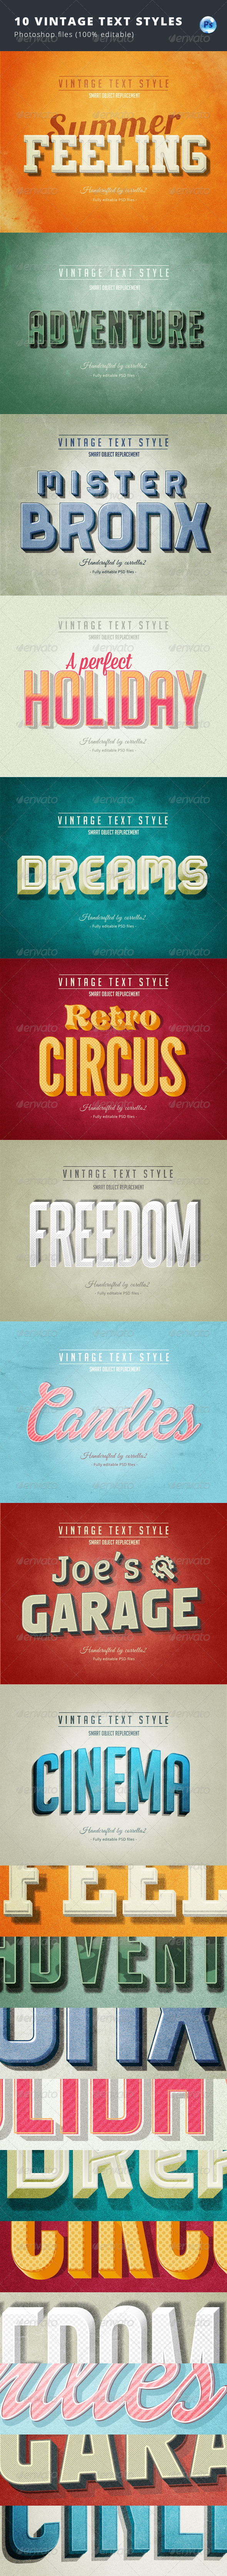 GraphicRiver 10 Vintage Text Styles 8429375